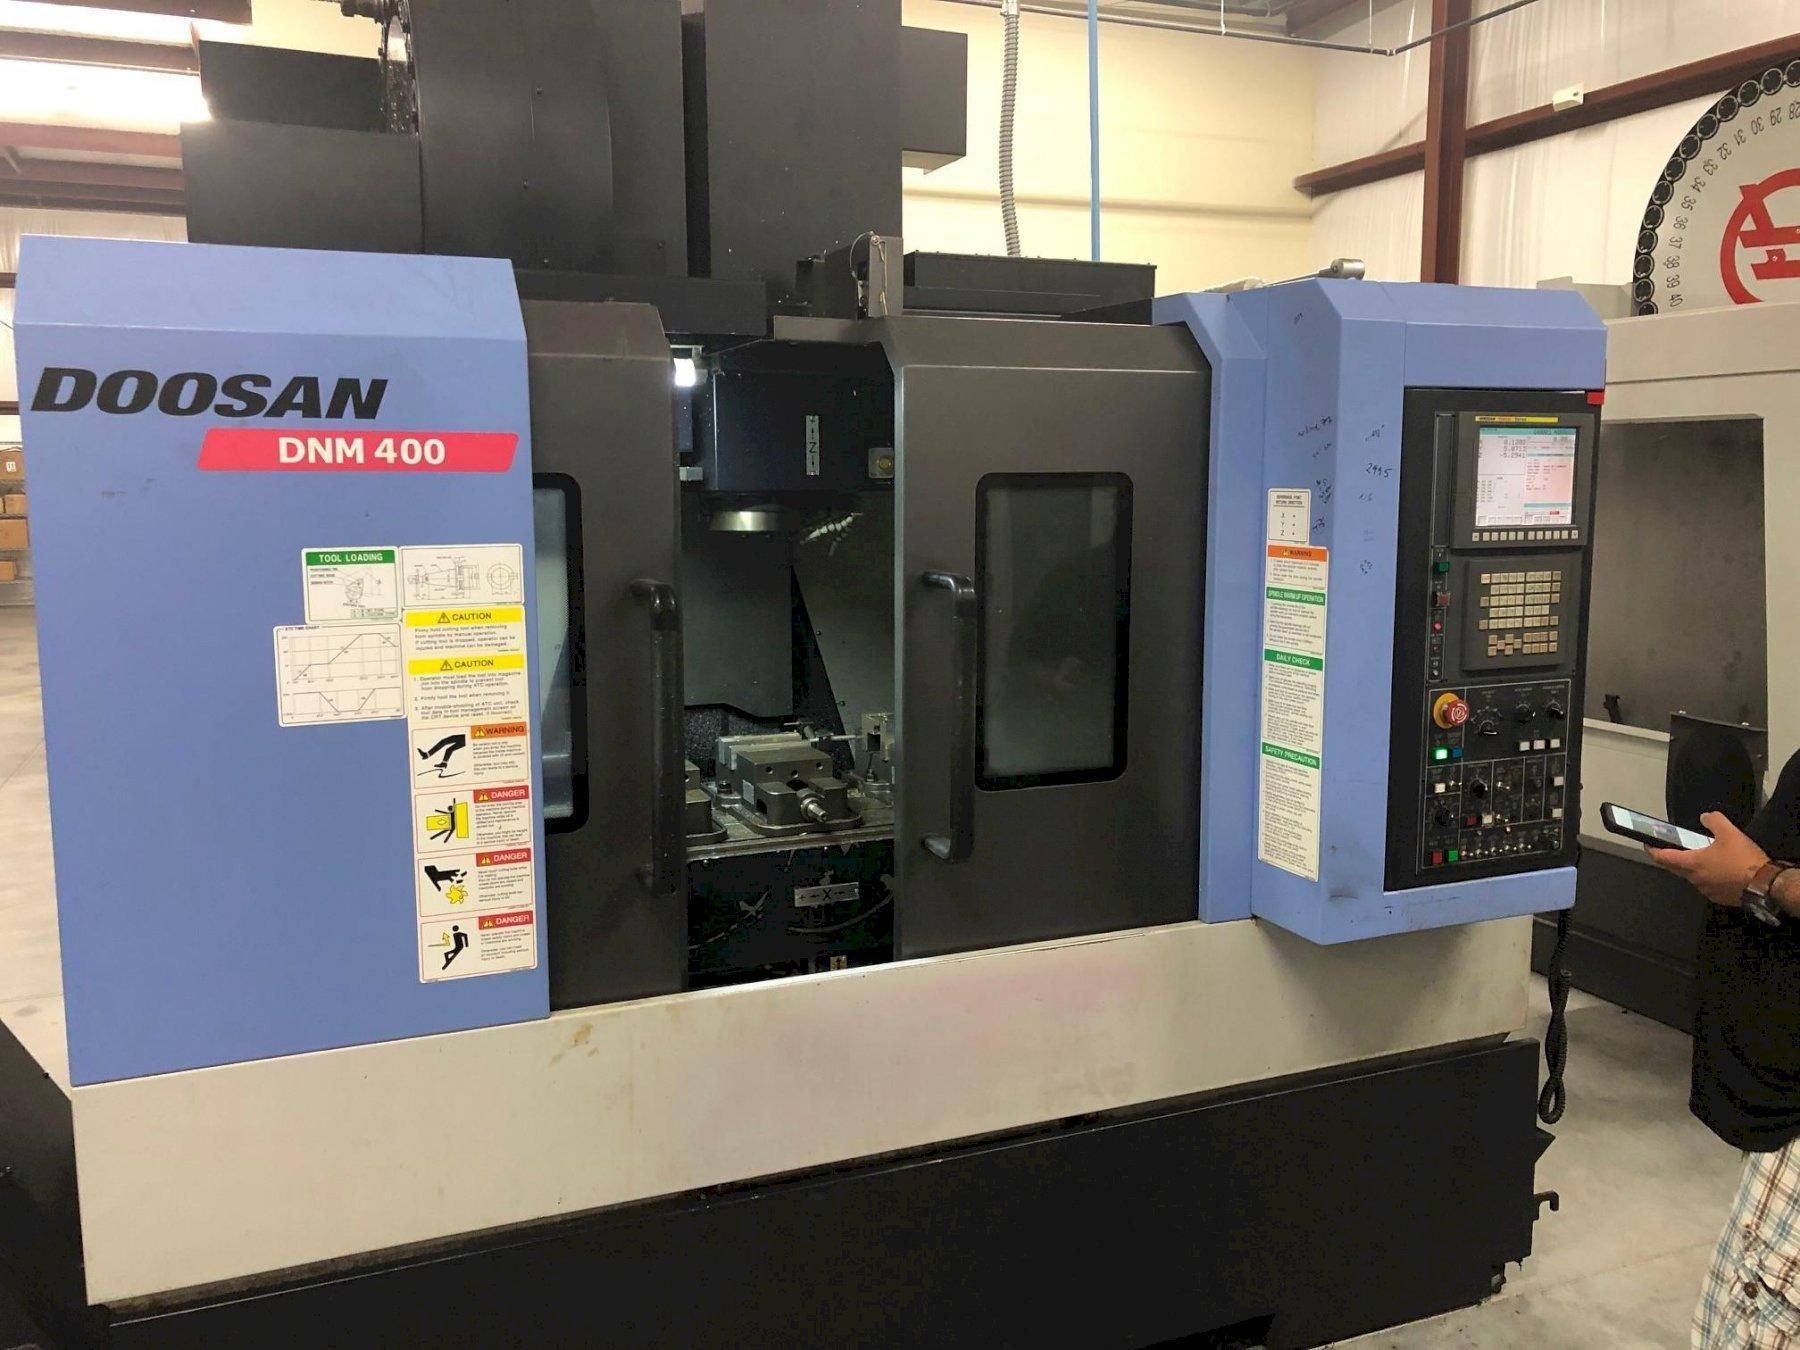 2013 Doosan DNM 400 4-Axis CNC Vertical Machining Centers - 2 Available!